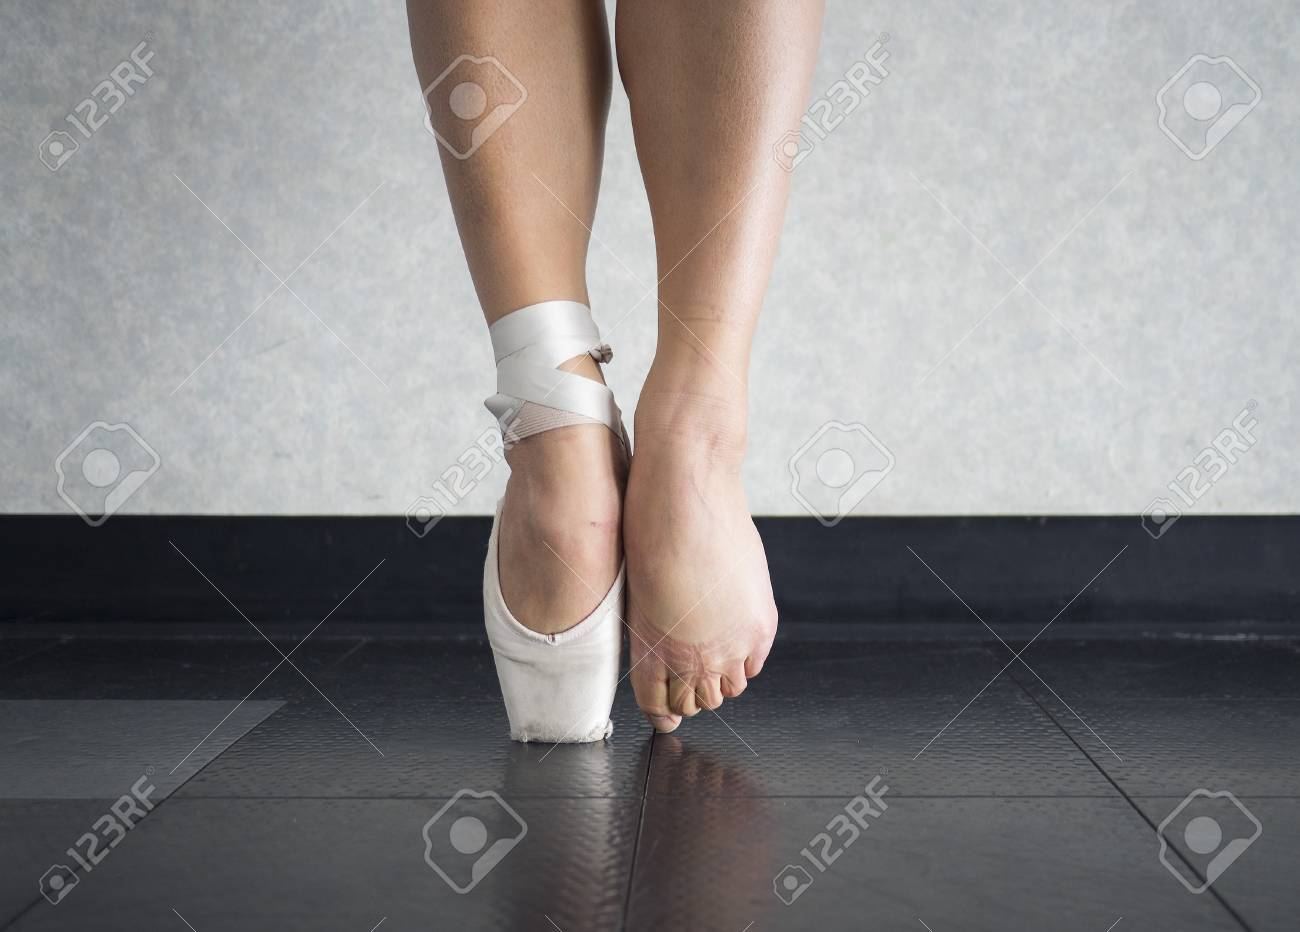 The Ballet Dancer Balance On Their Pointe Shoes And The Feet Stock Photo Picture And Royalty Free Image Image 102618866